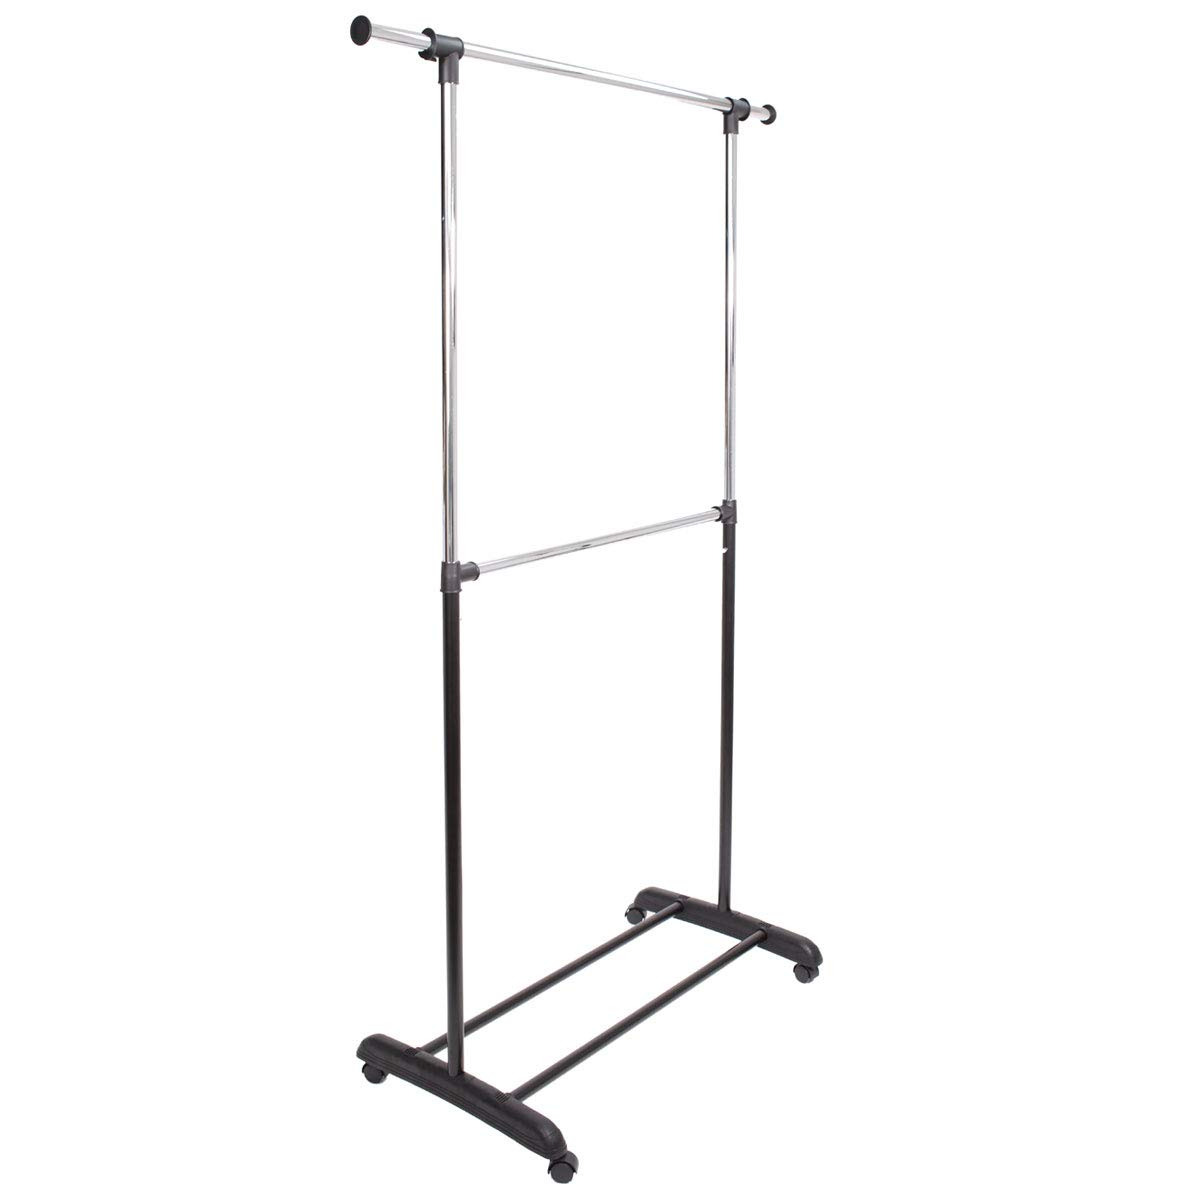 Tidyliving Commercial Grade Clothing Garment Rack with Wheels, Adjustable Heavy Duty Double Rod Hanging Rolling Rack Clothes Stand - Black and Chrome